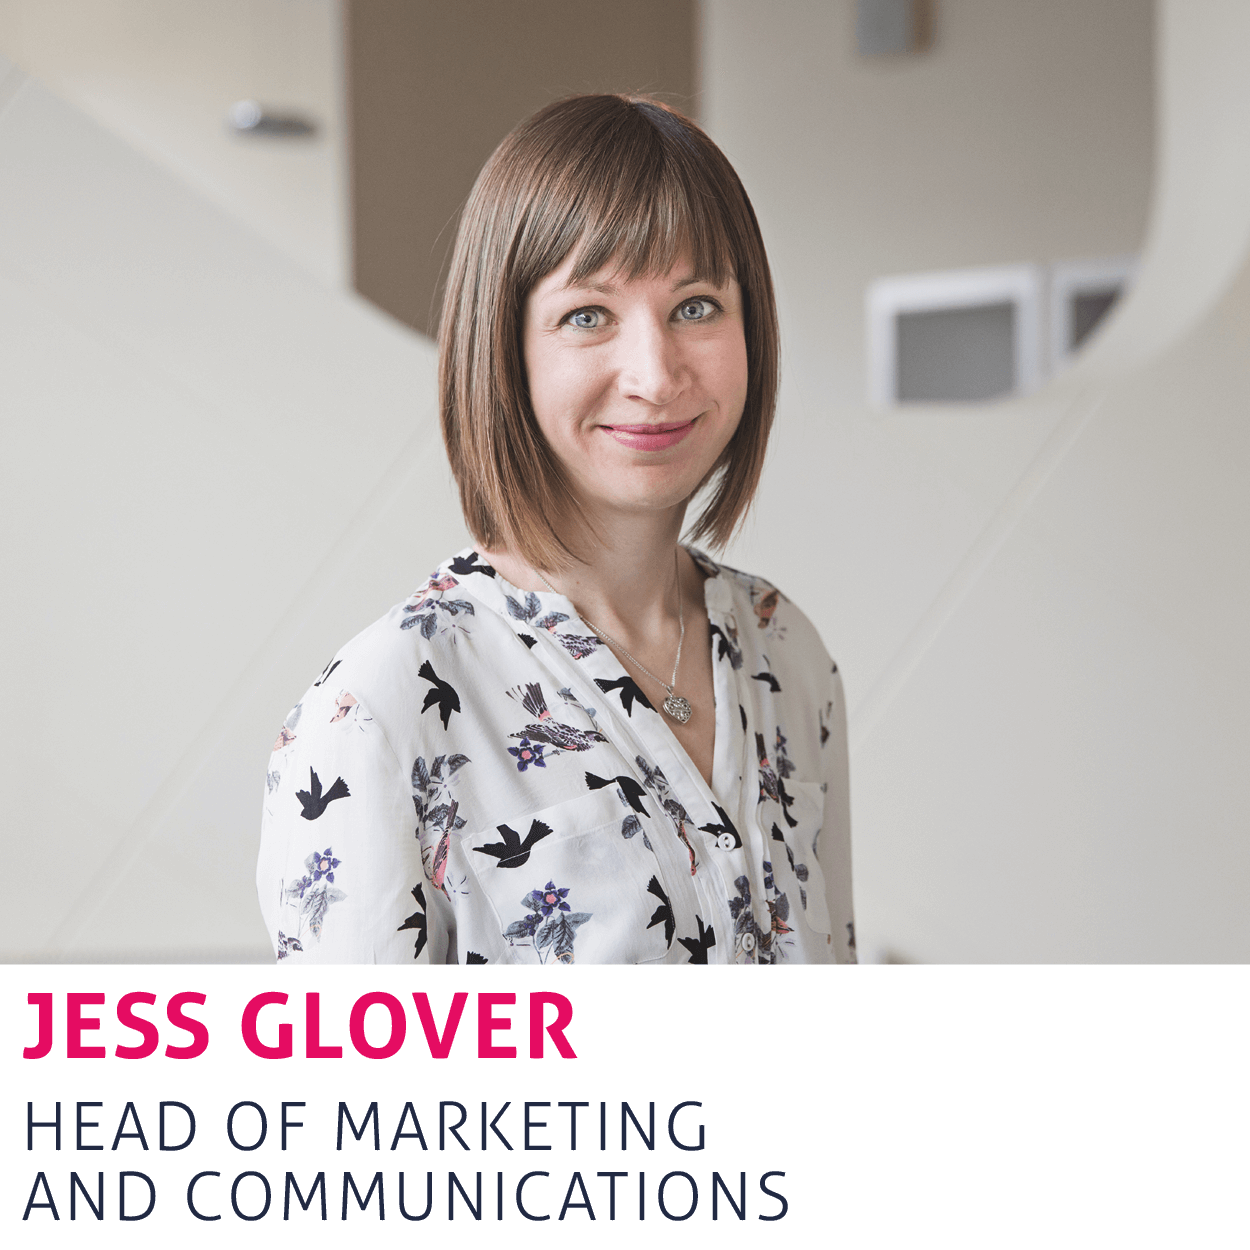 Jess Glover, Head of Marketing and Communications